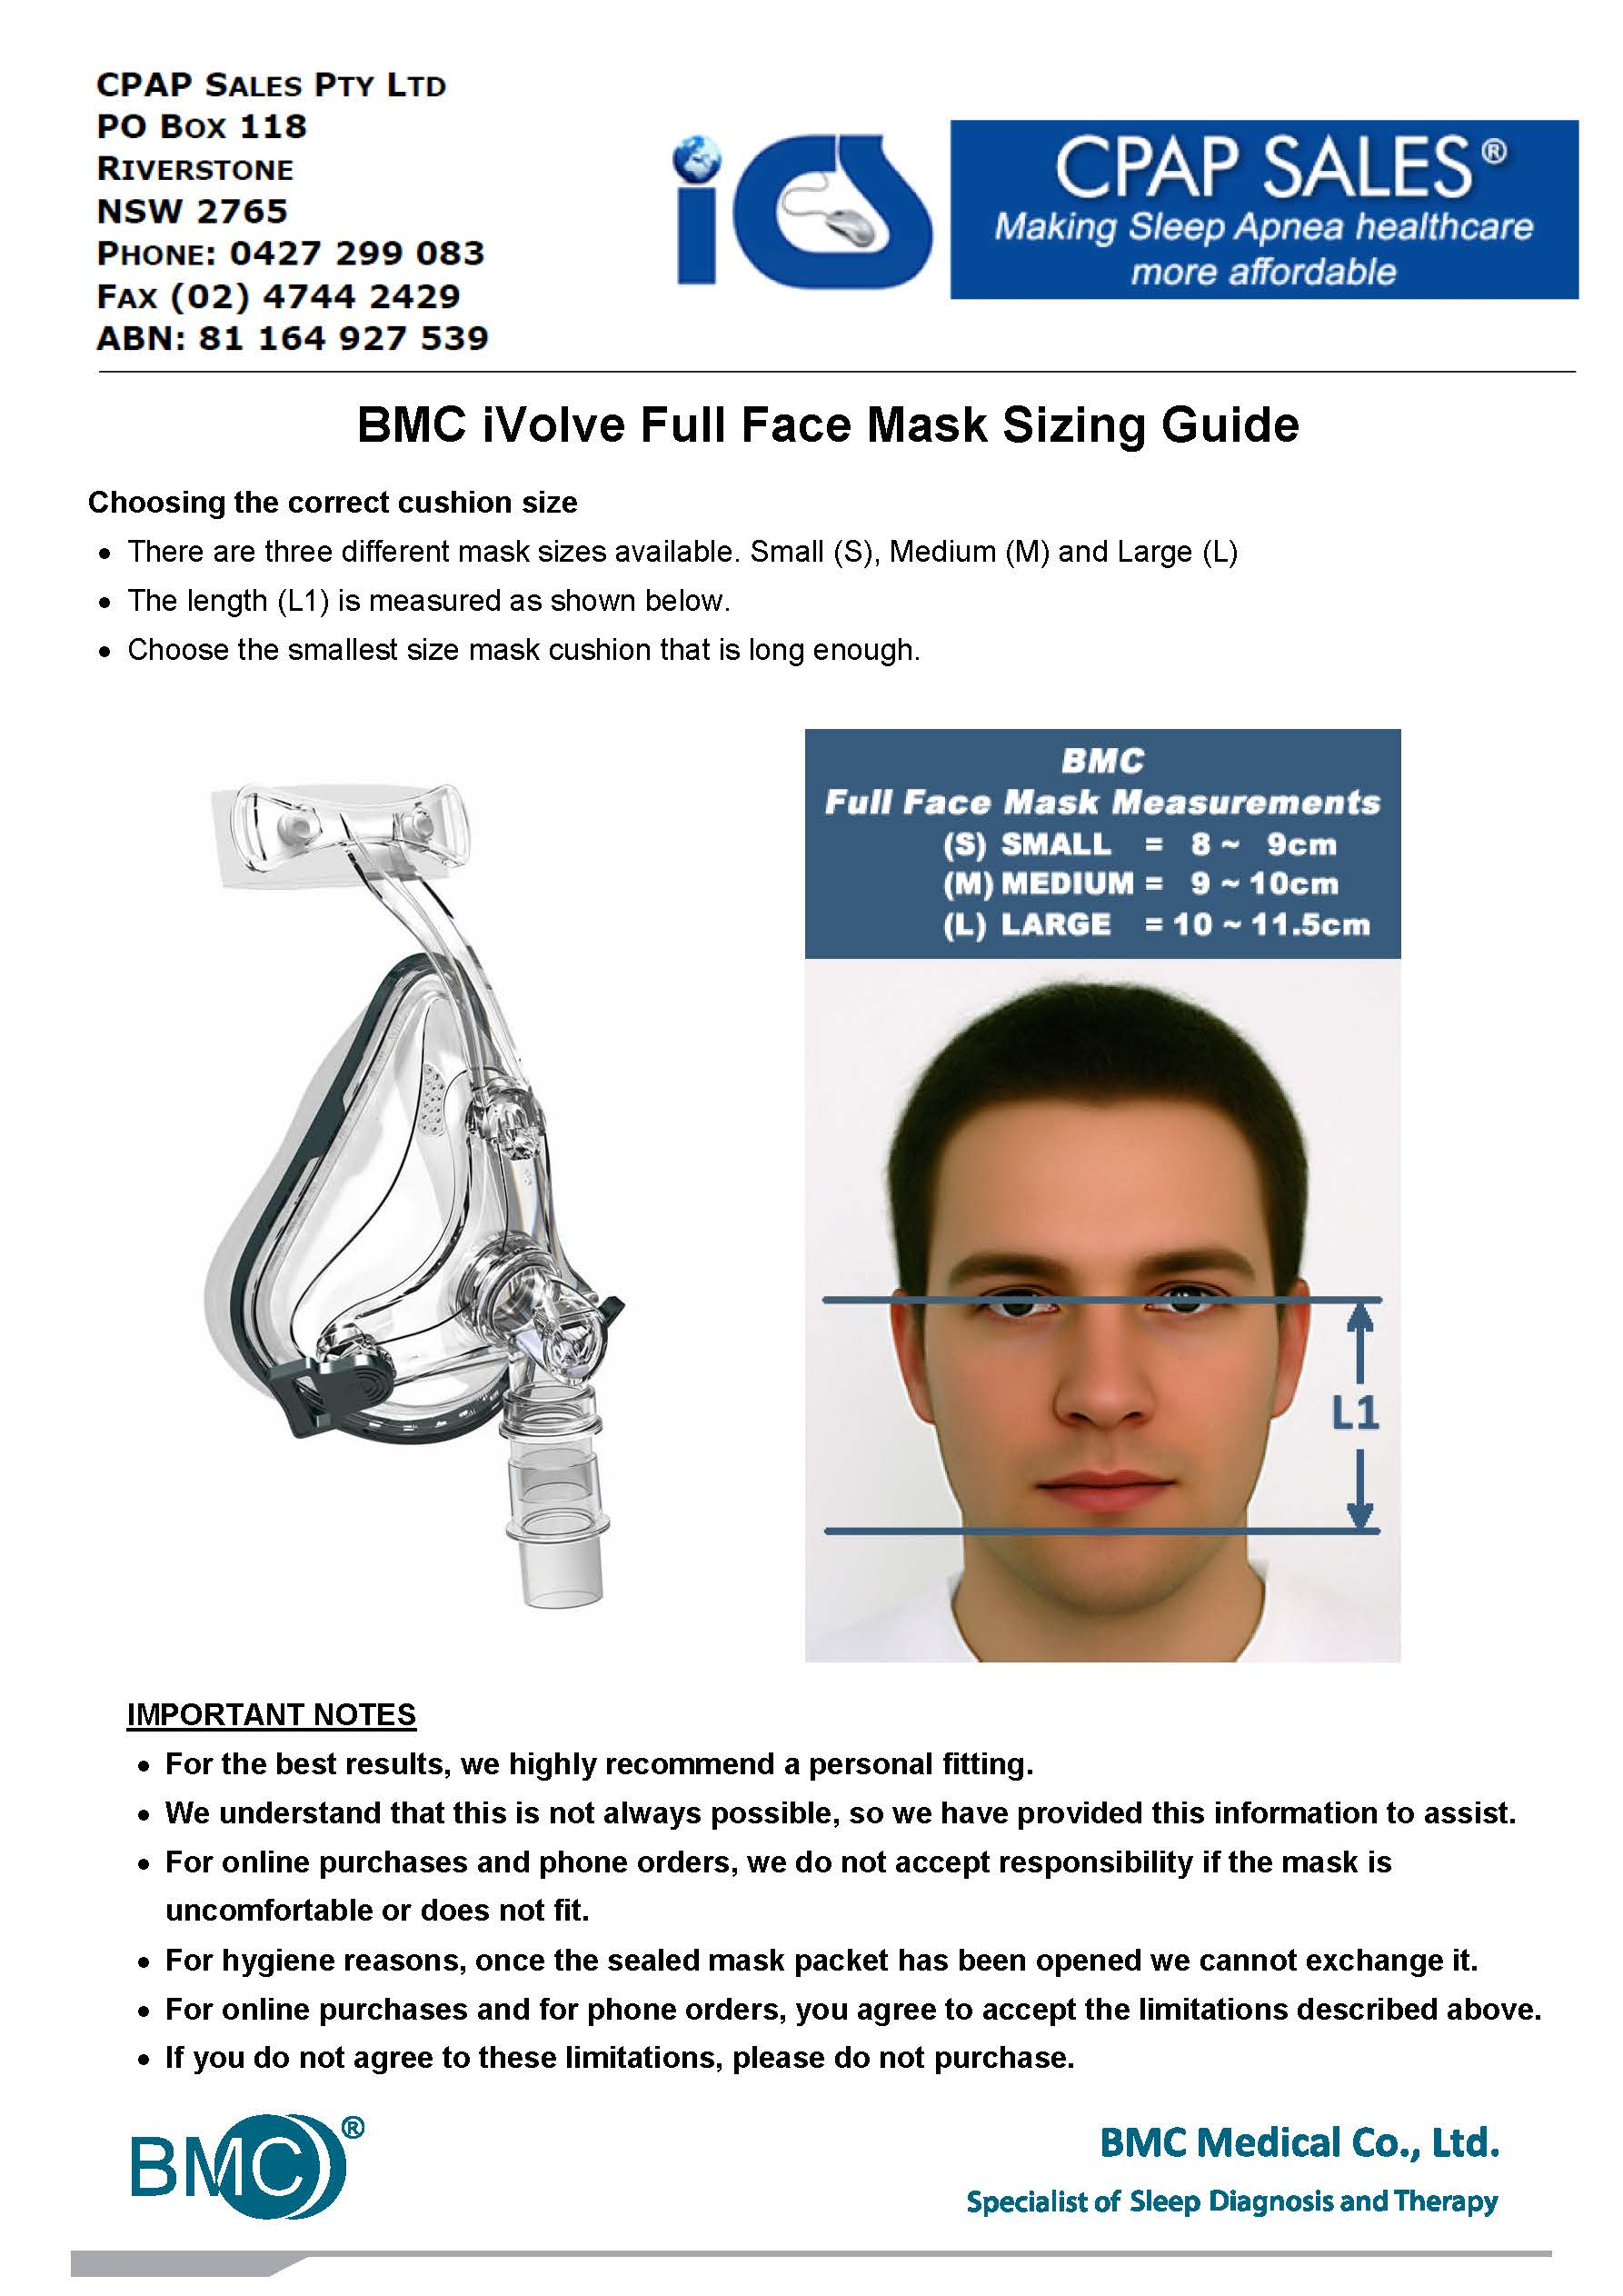 Full Face CPAP Mask Measurement